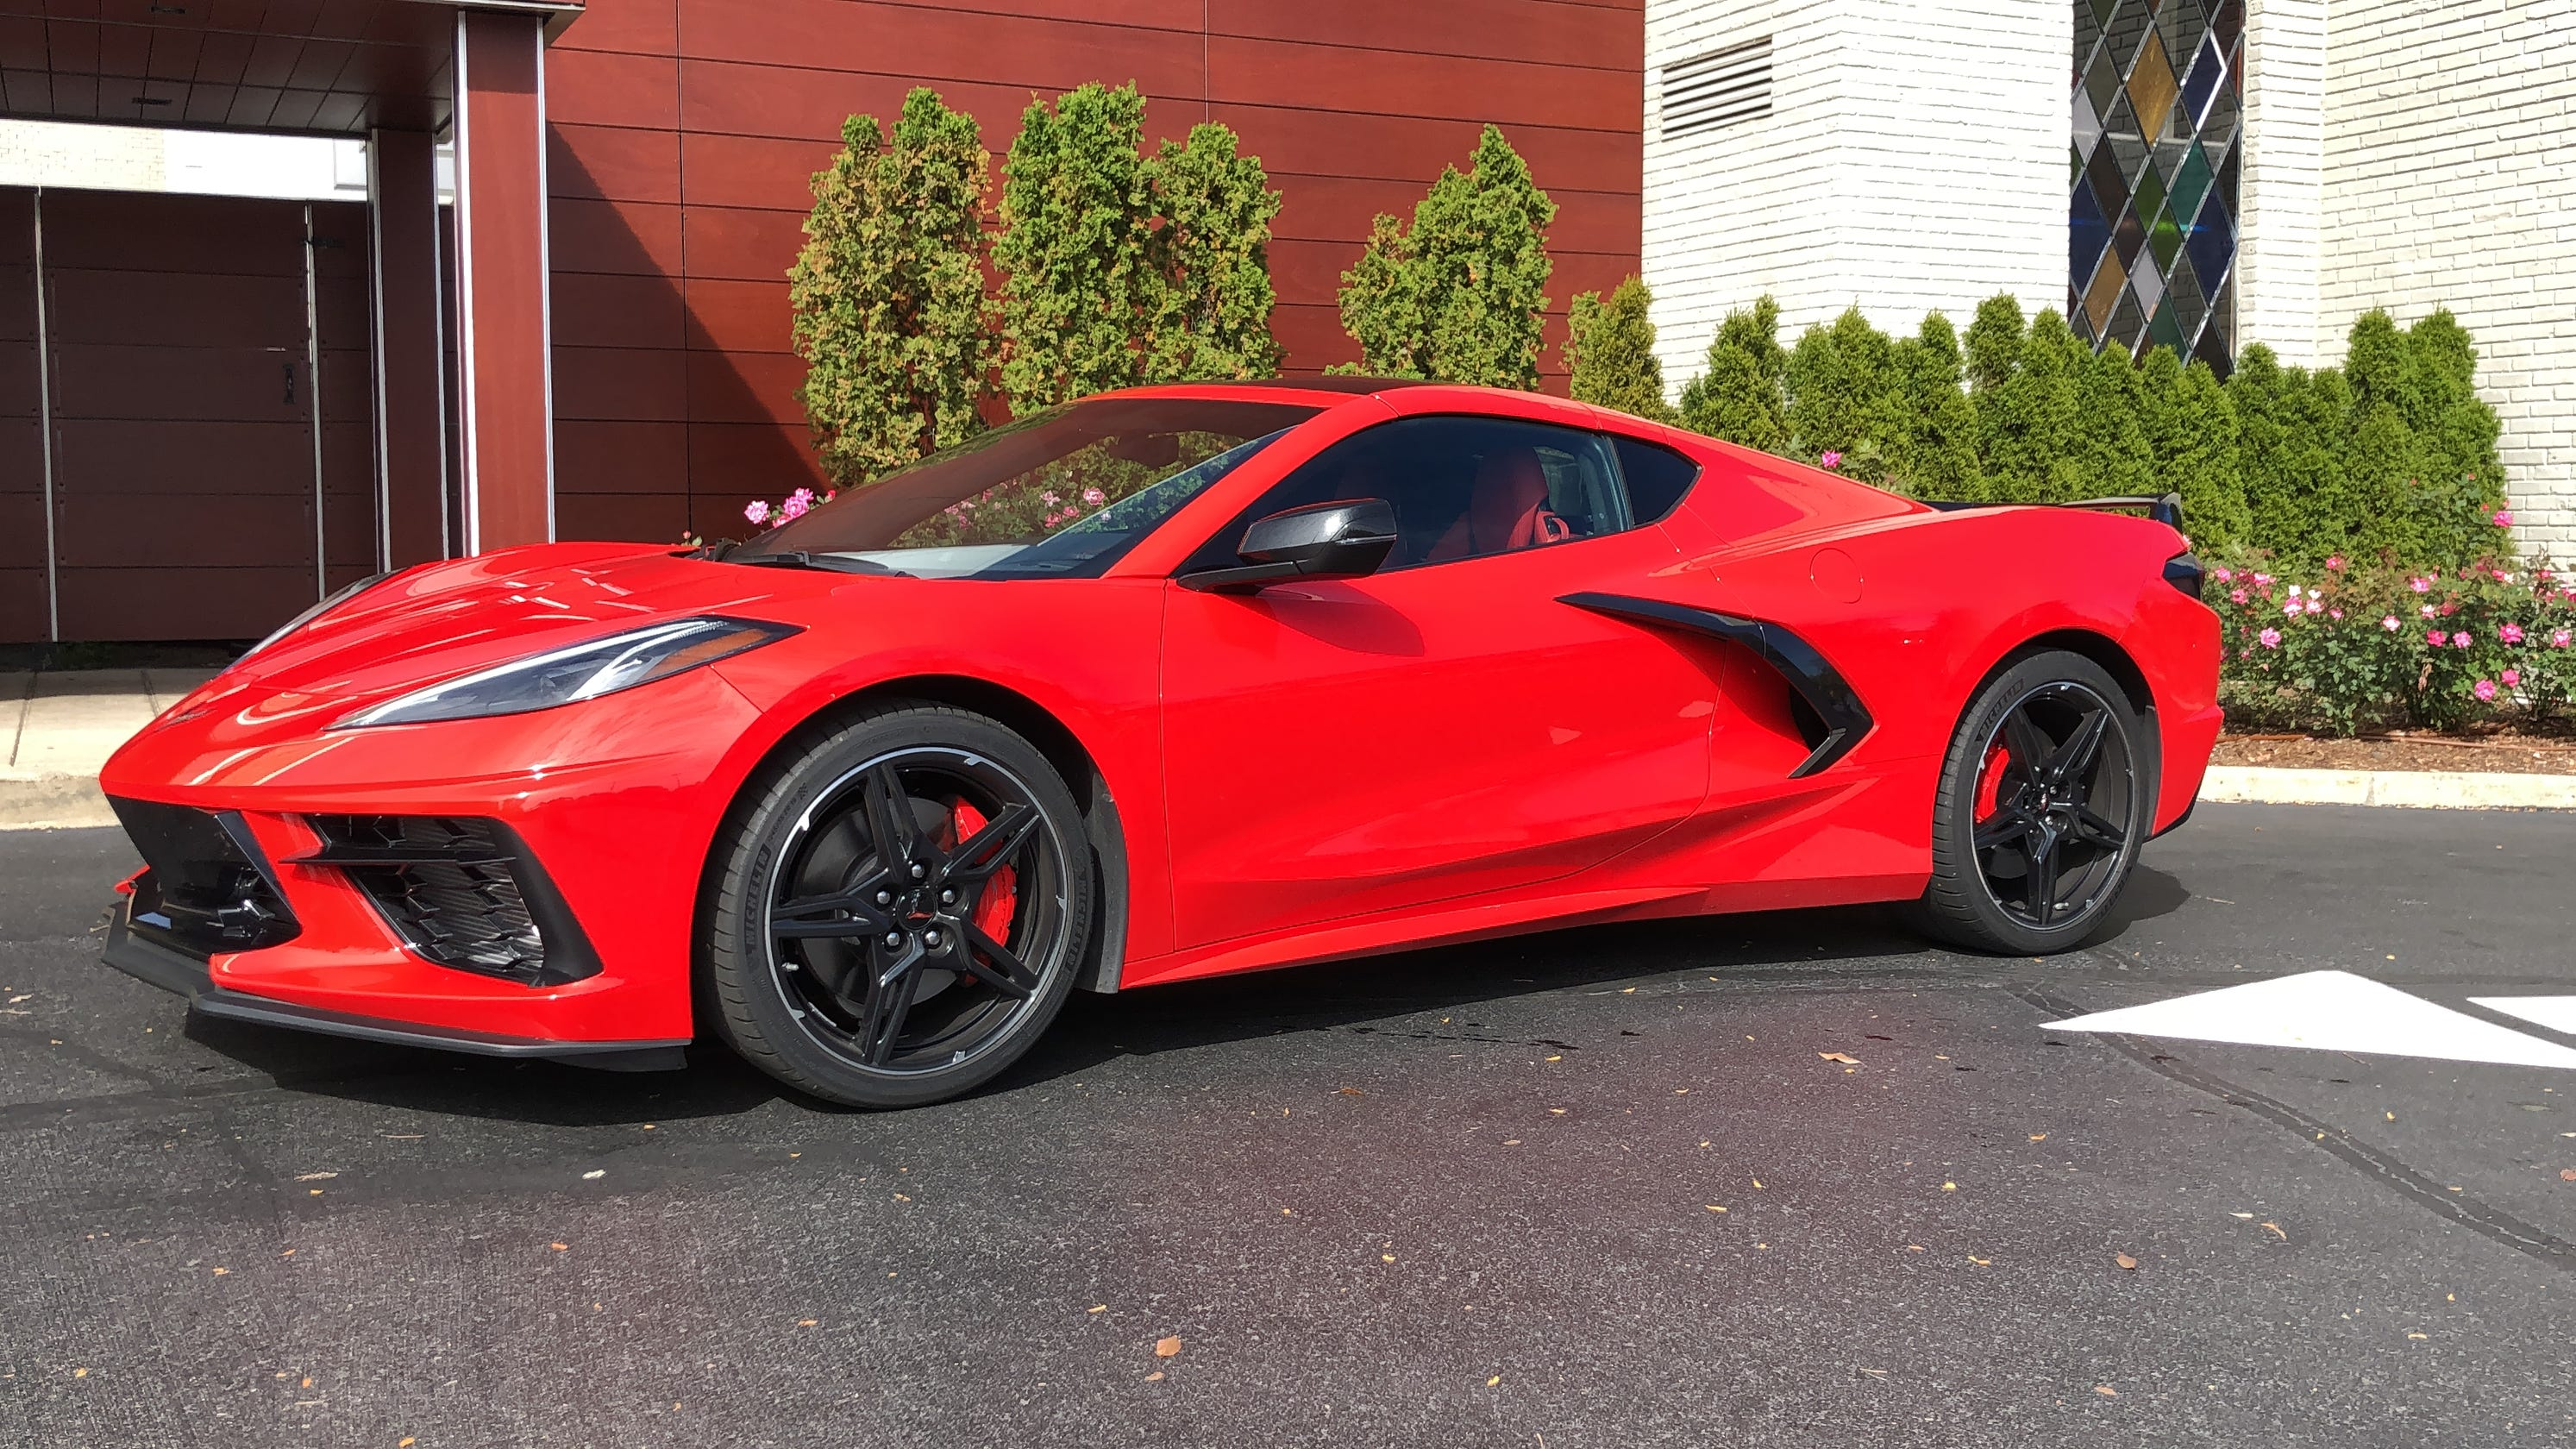 New Chevy Corvette has surprise for owners at 500 miles — and they'll love it